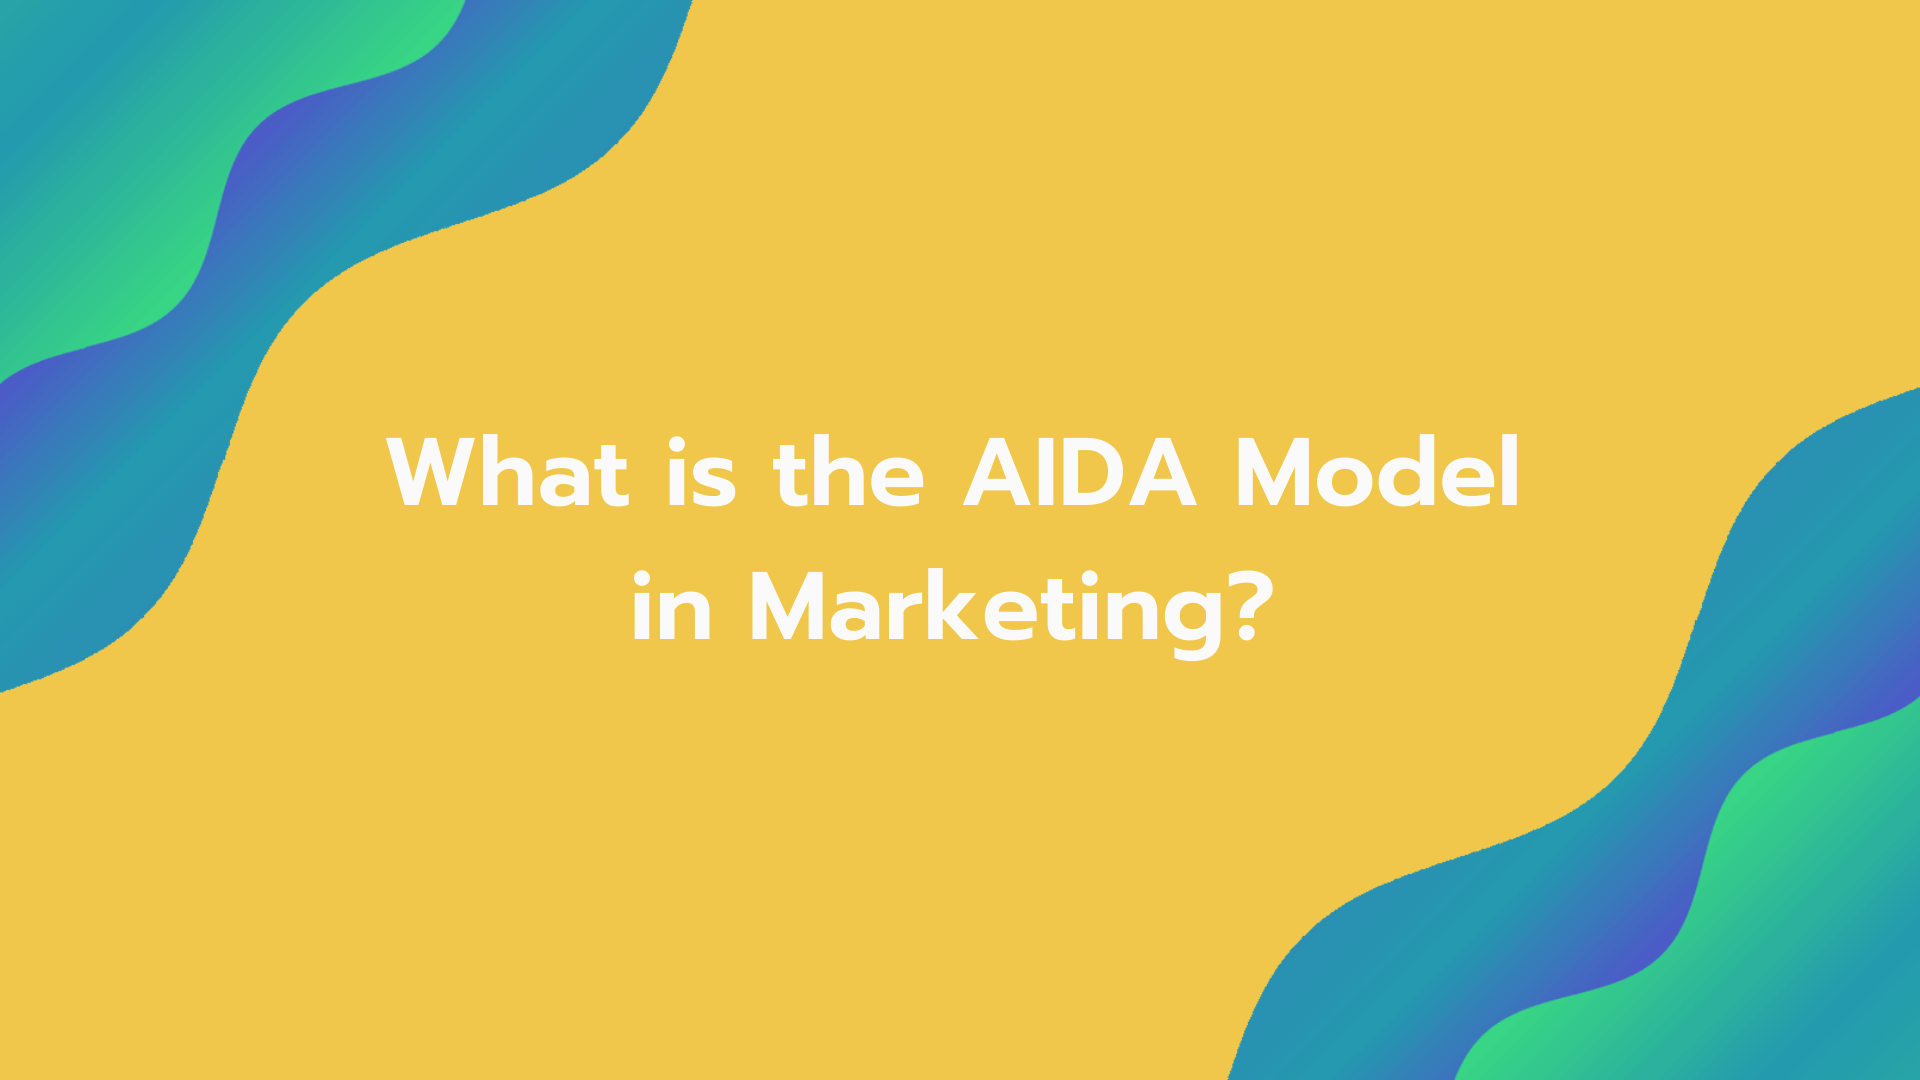 What is the AIDA model in marketing